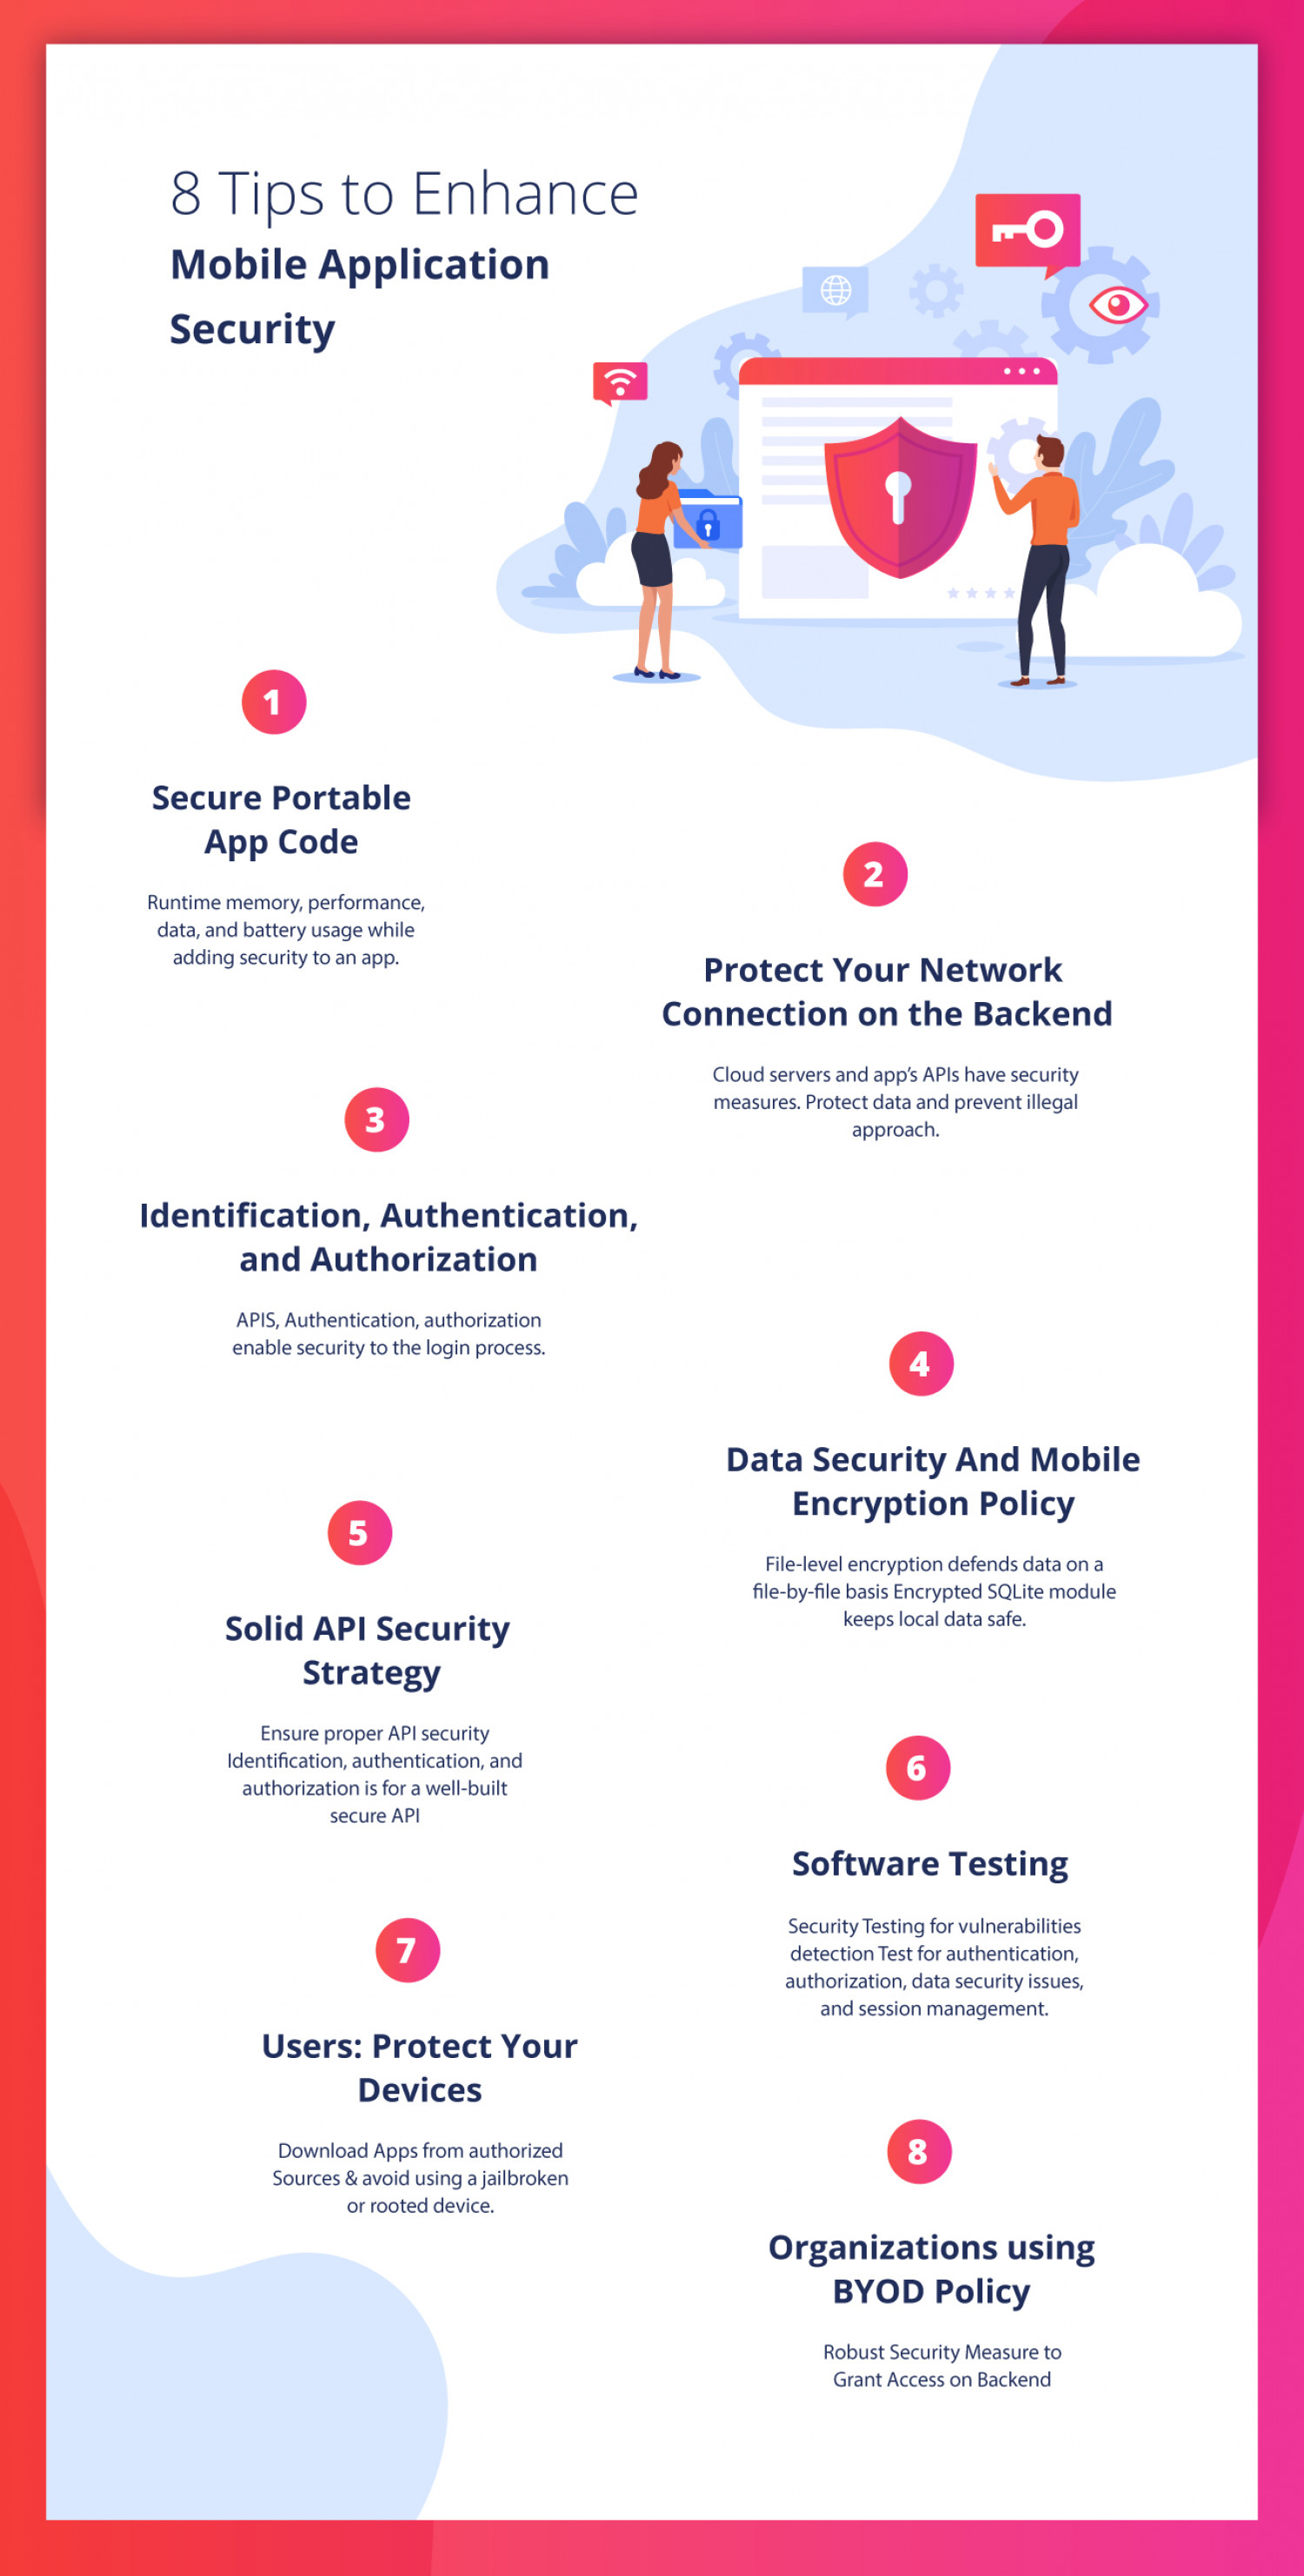 8 Tips for Better Mobile Applications Infographic